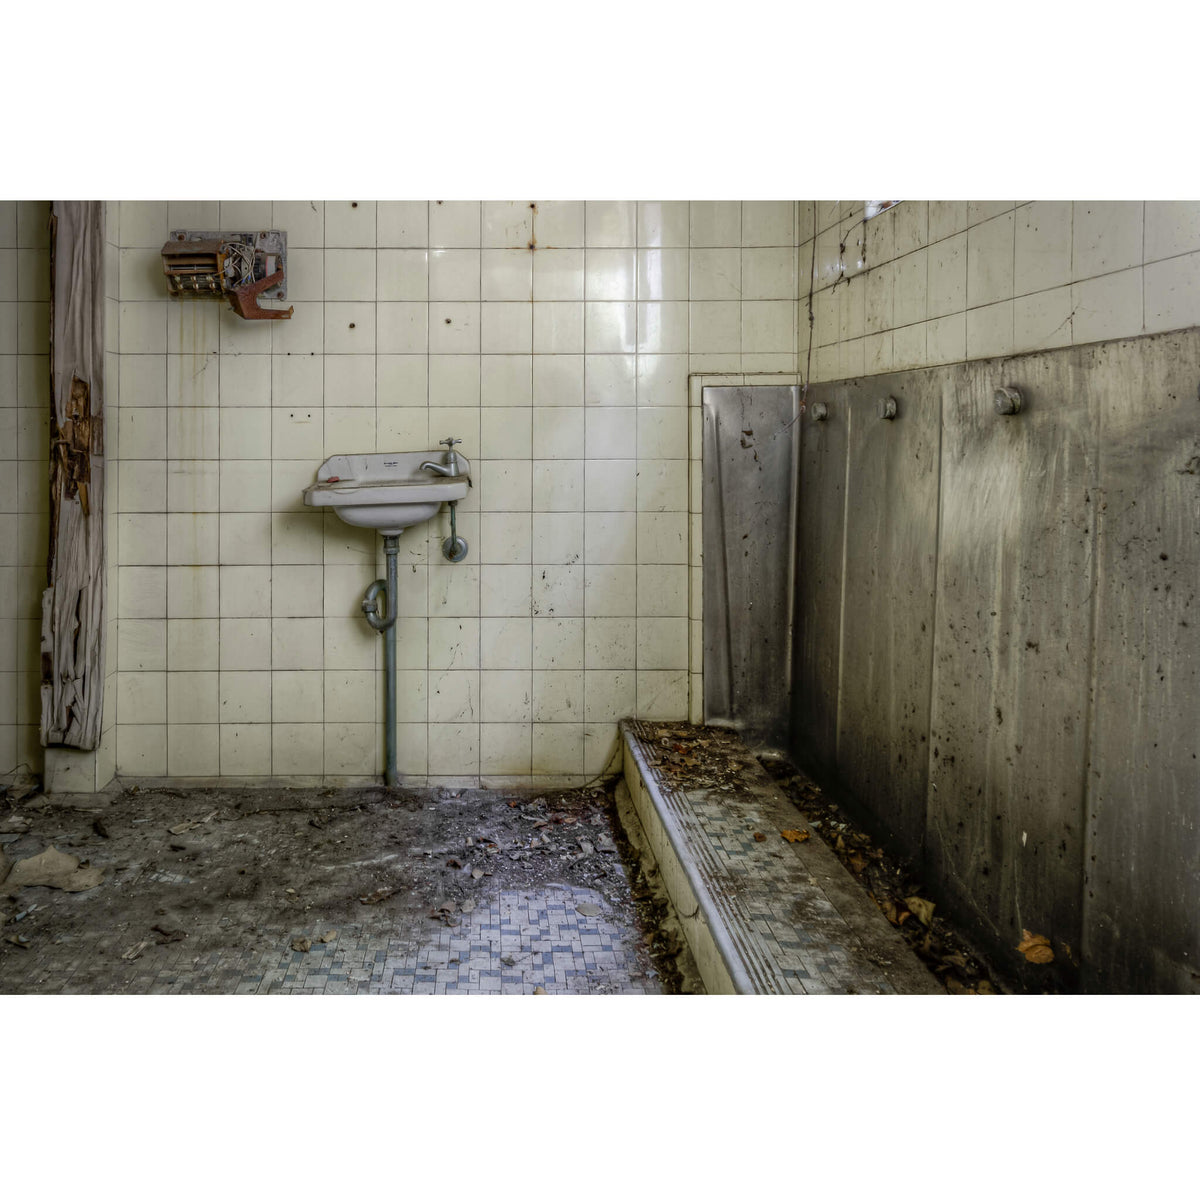 Mens Bathroom | Terminus Hotel Fine Art Print - Lost Collective Shop